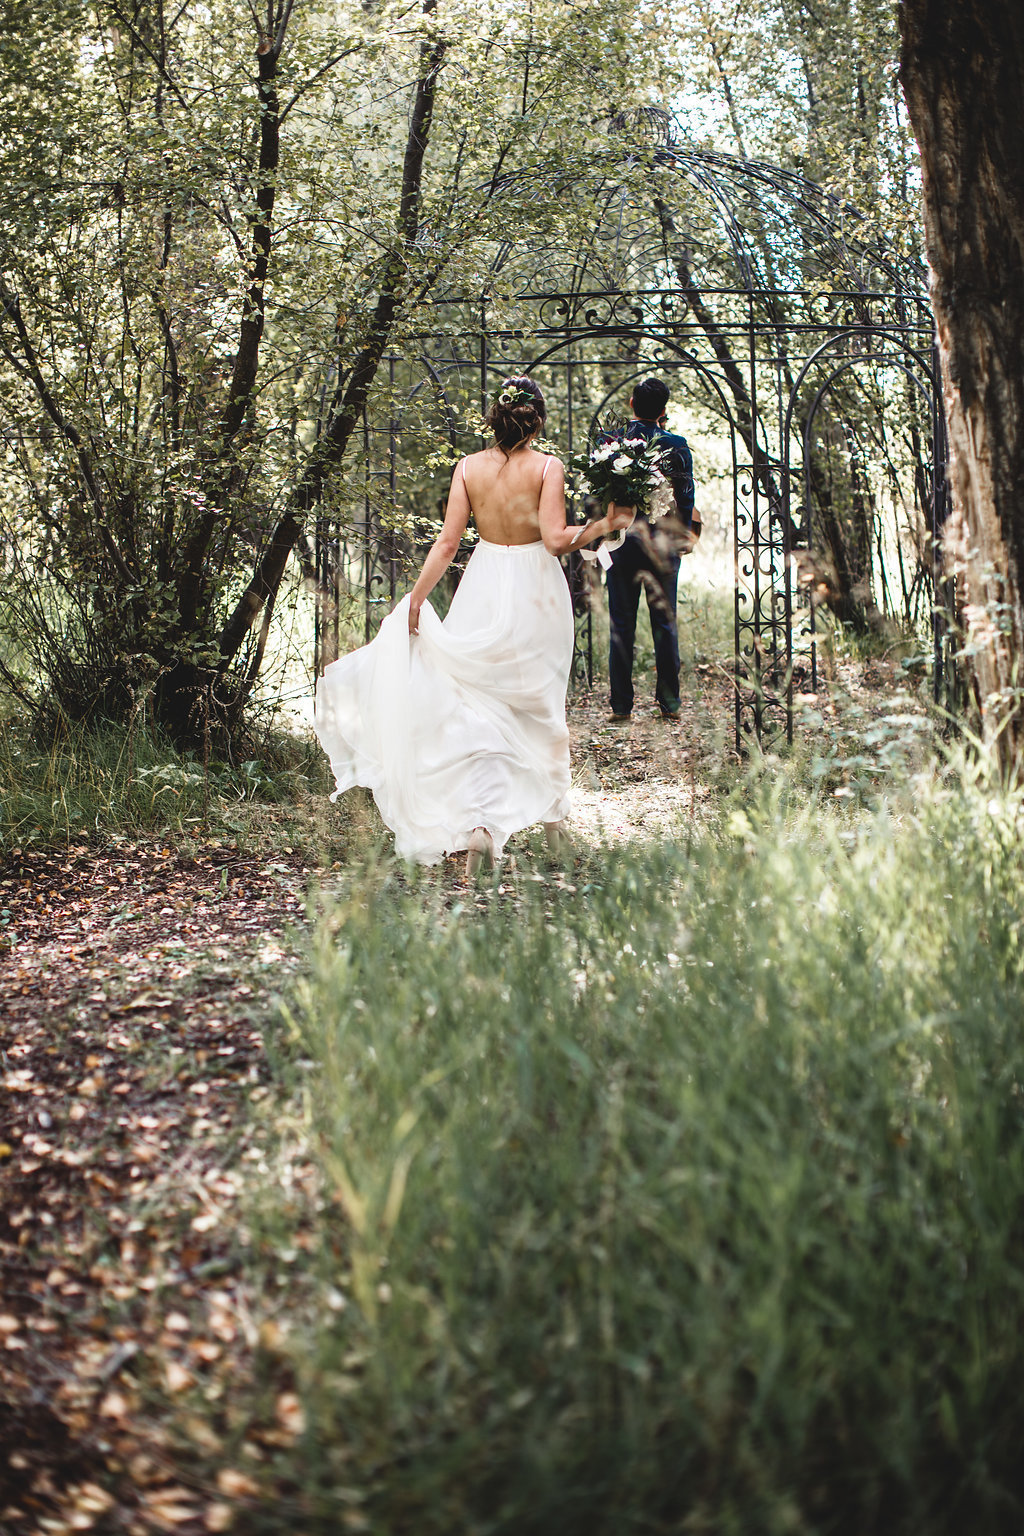 new-mexico-destination-engagement-wedding-photography-videography-adventure-065